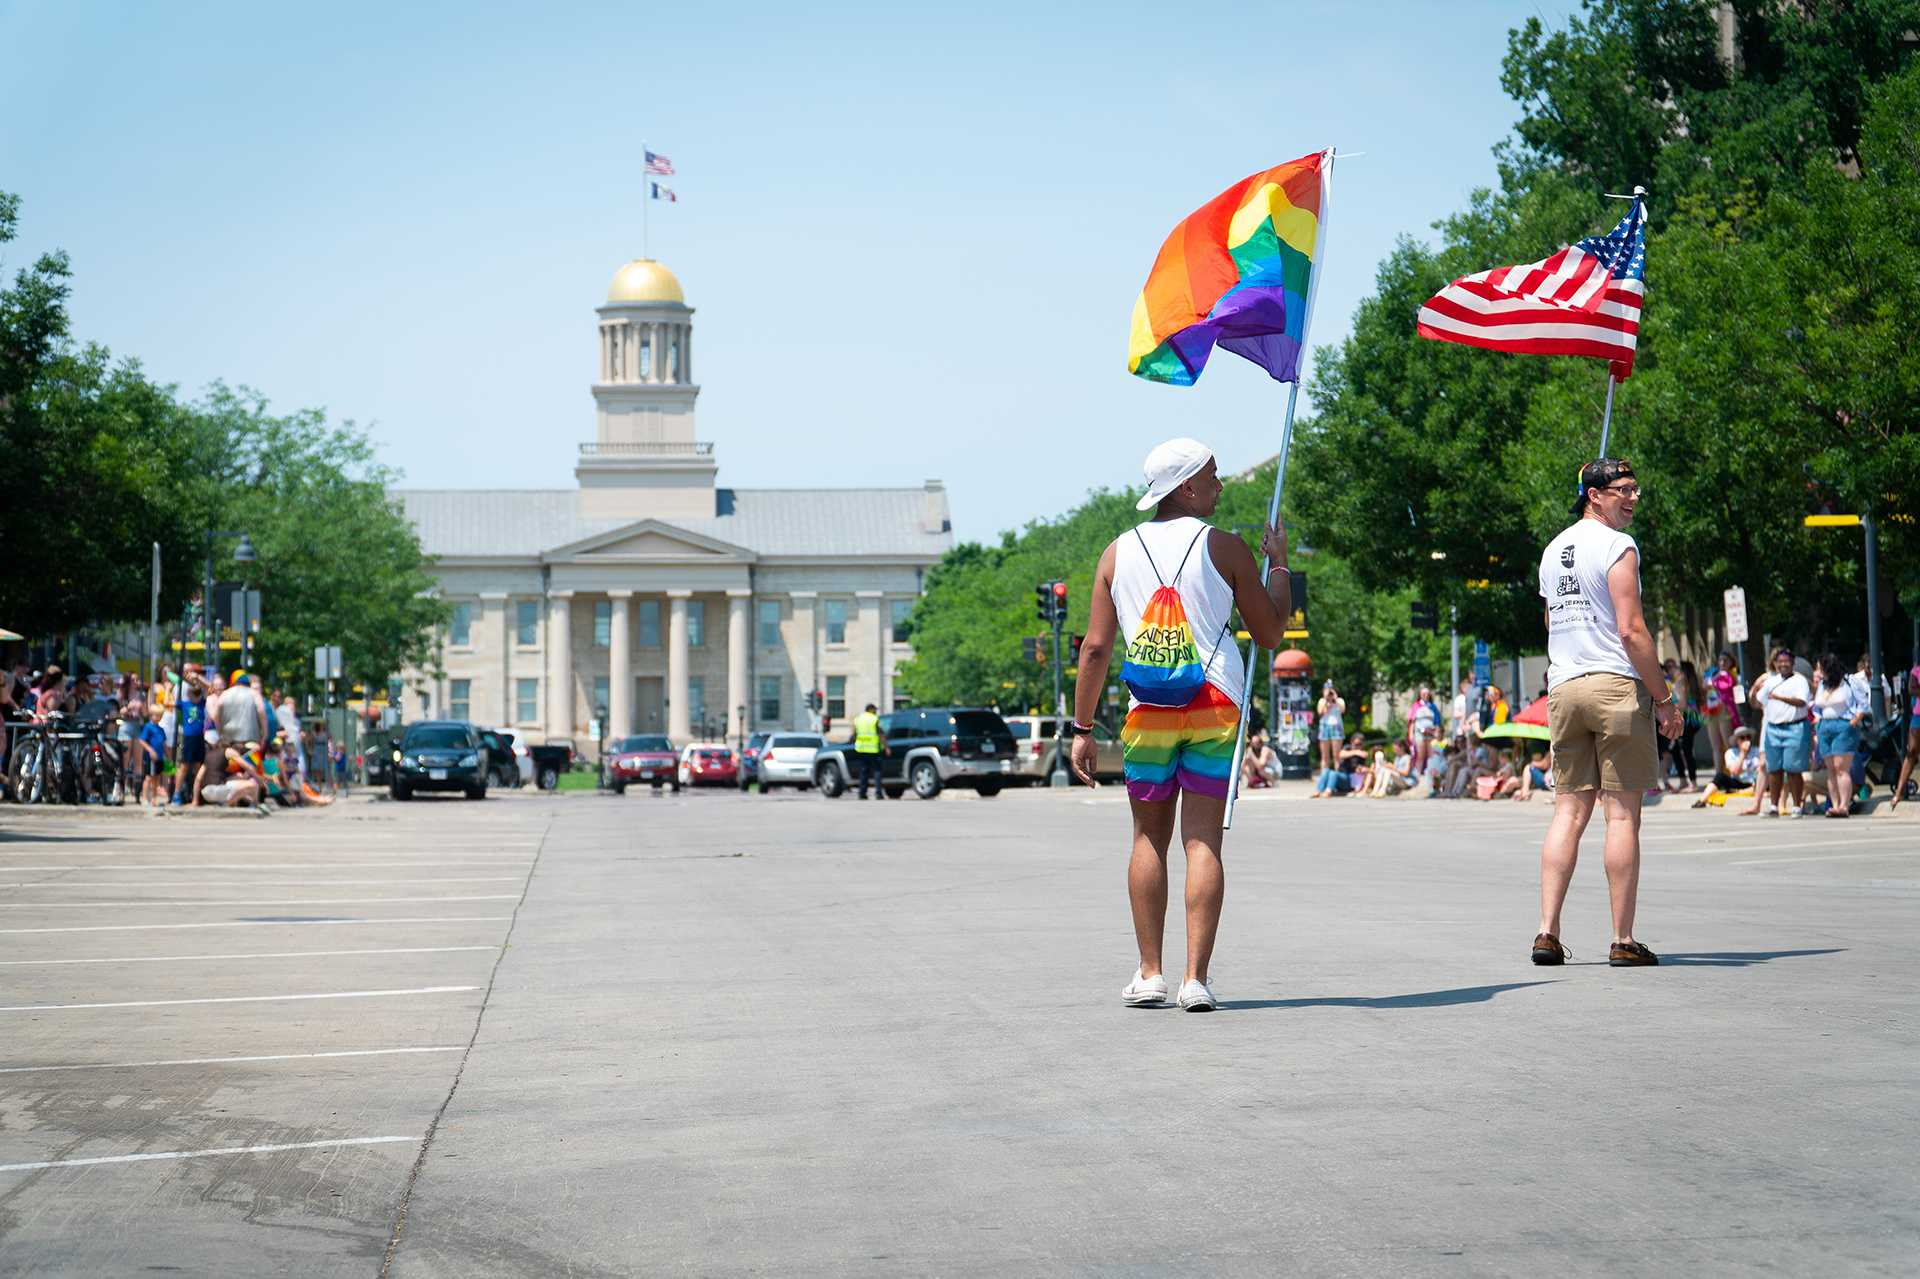 UI earns 4 out of 5 stars for LGBTQ friendliness